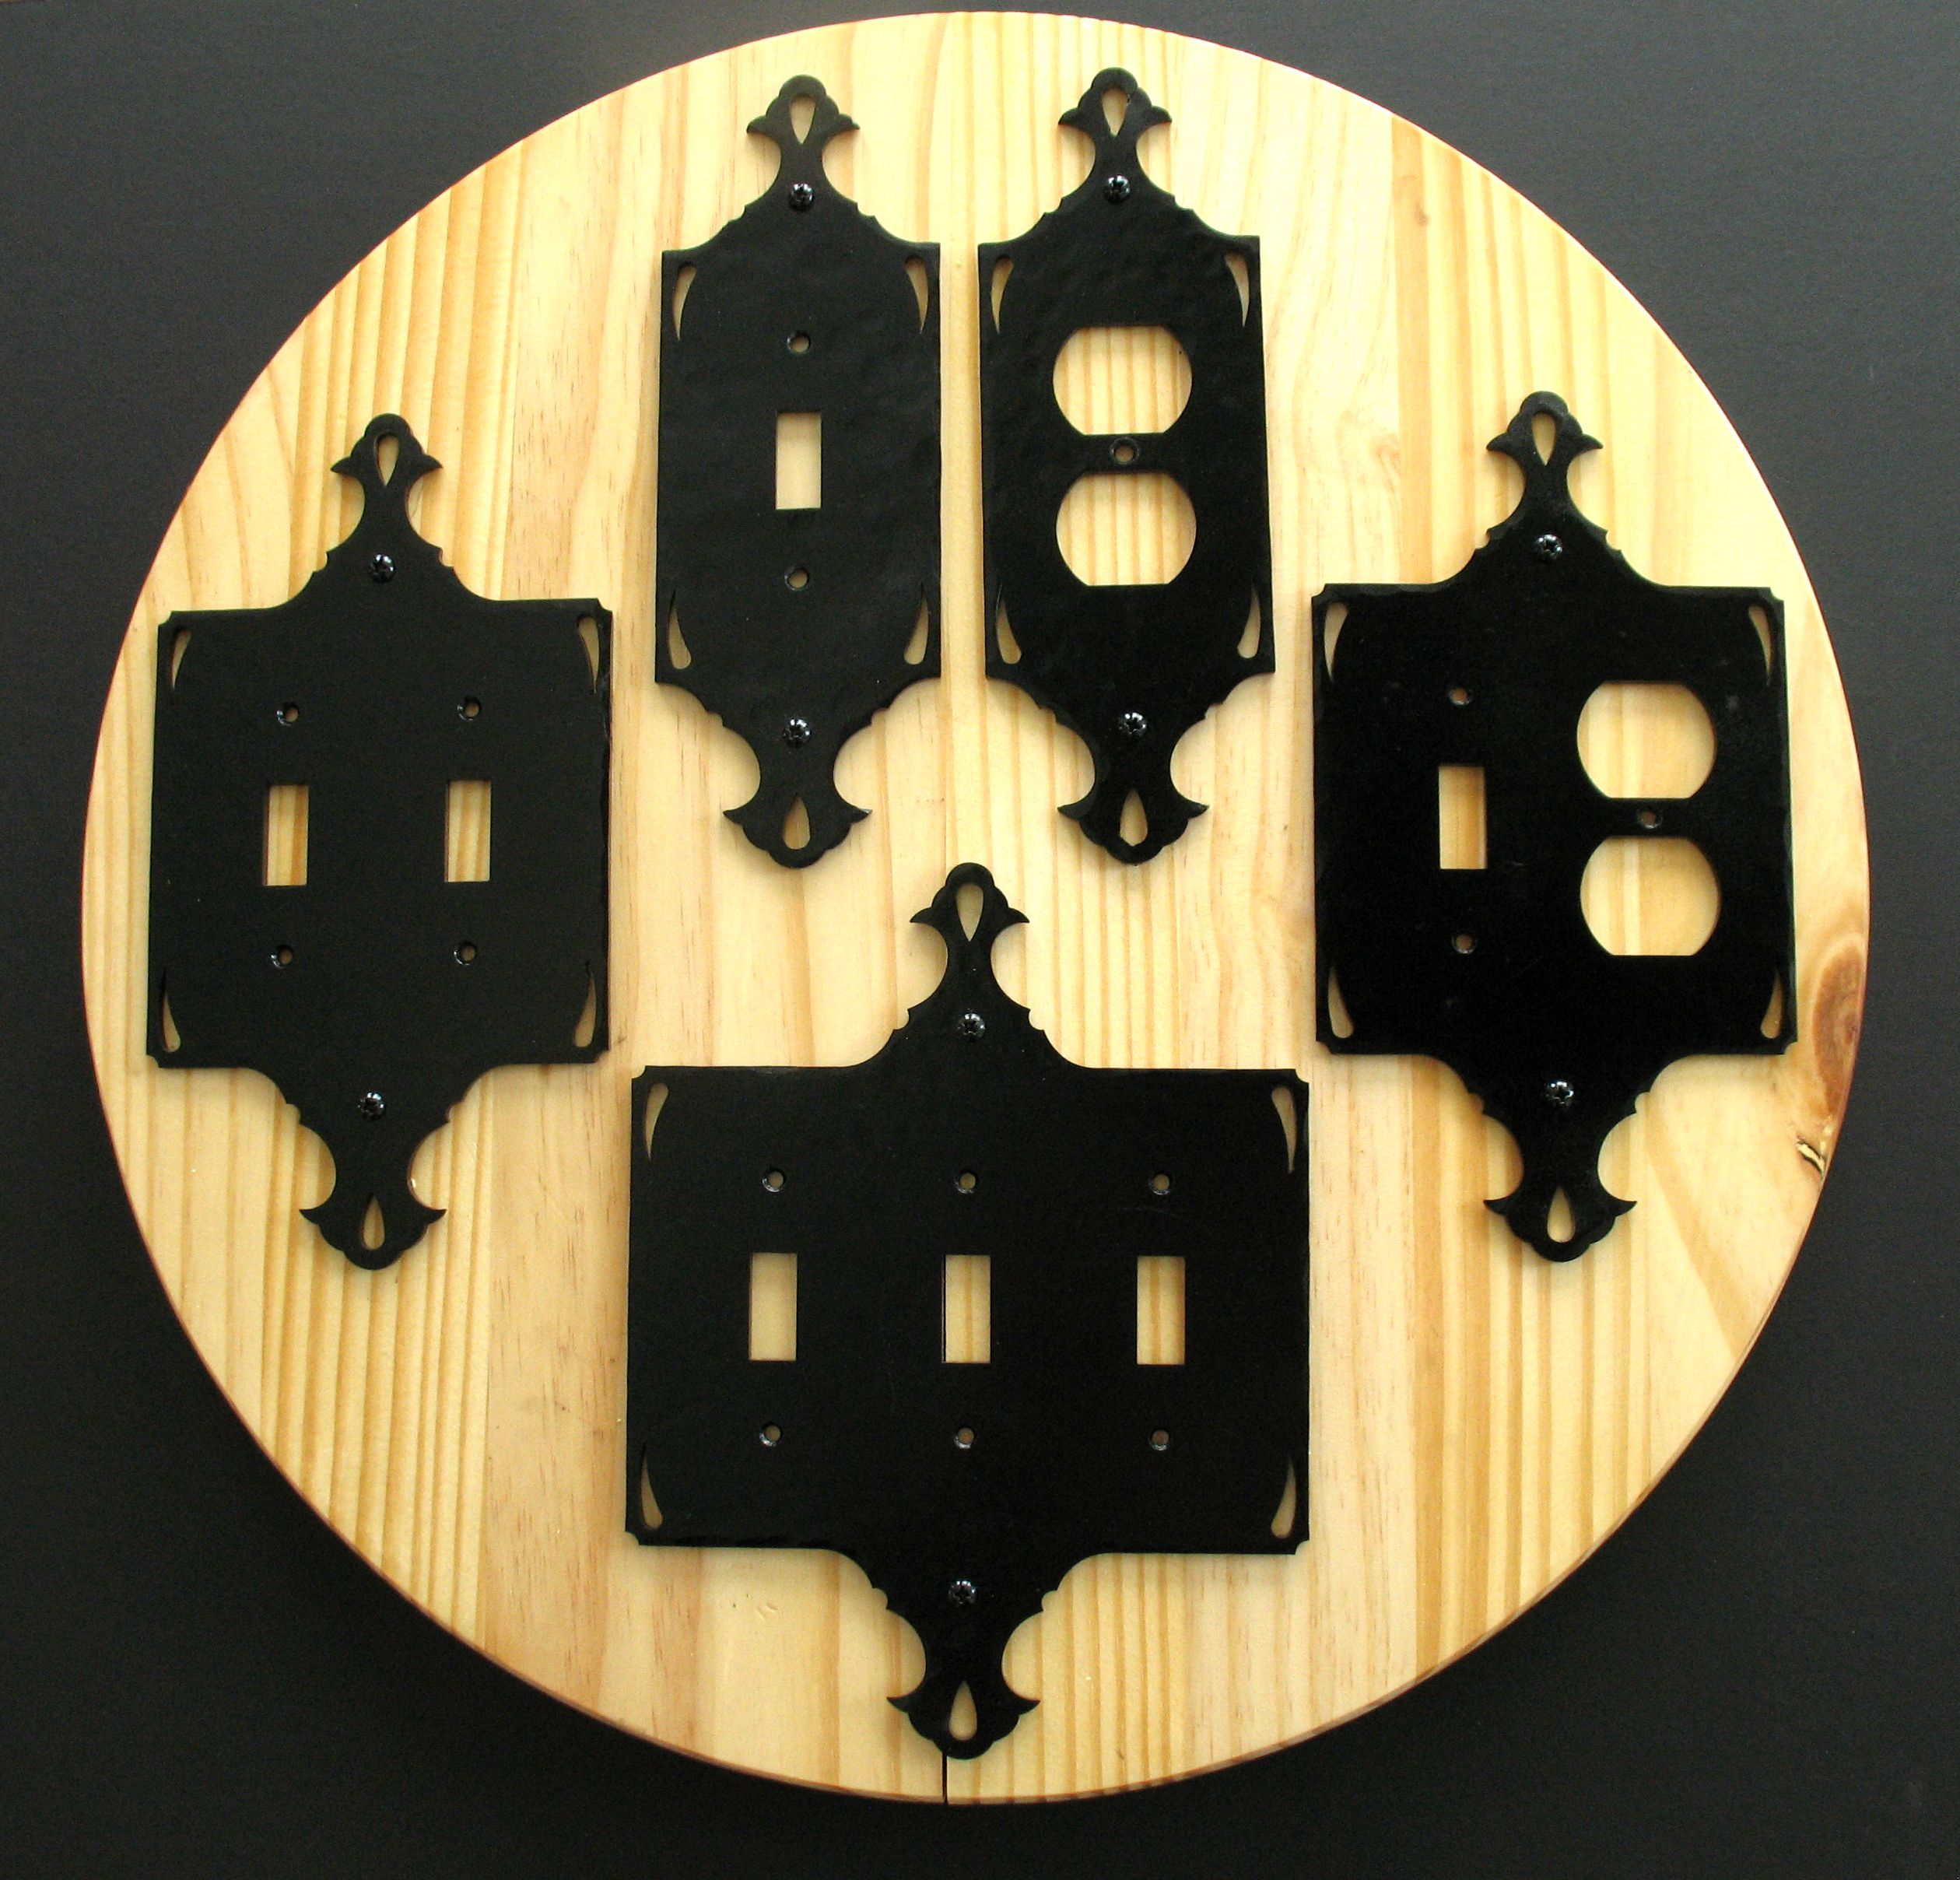 Enchanting Wall Switch Plate Covers Decorative Image Collection ...